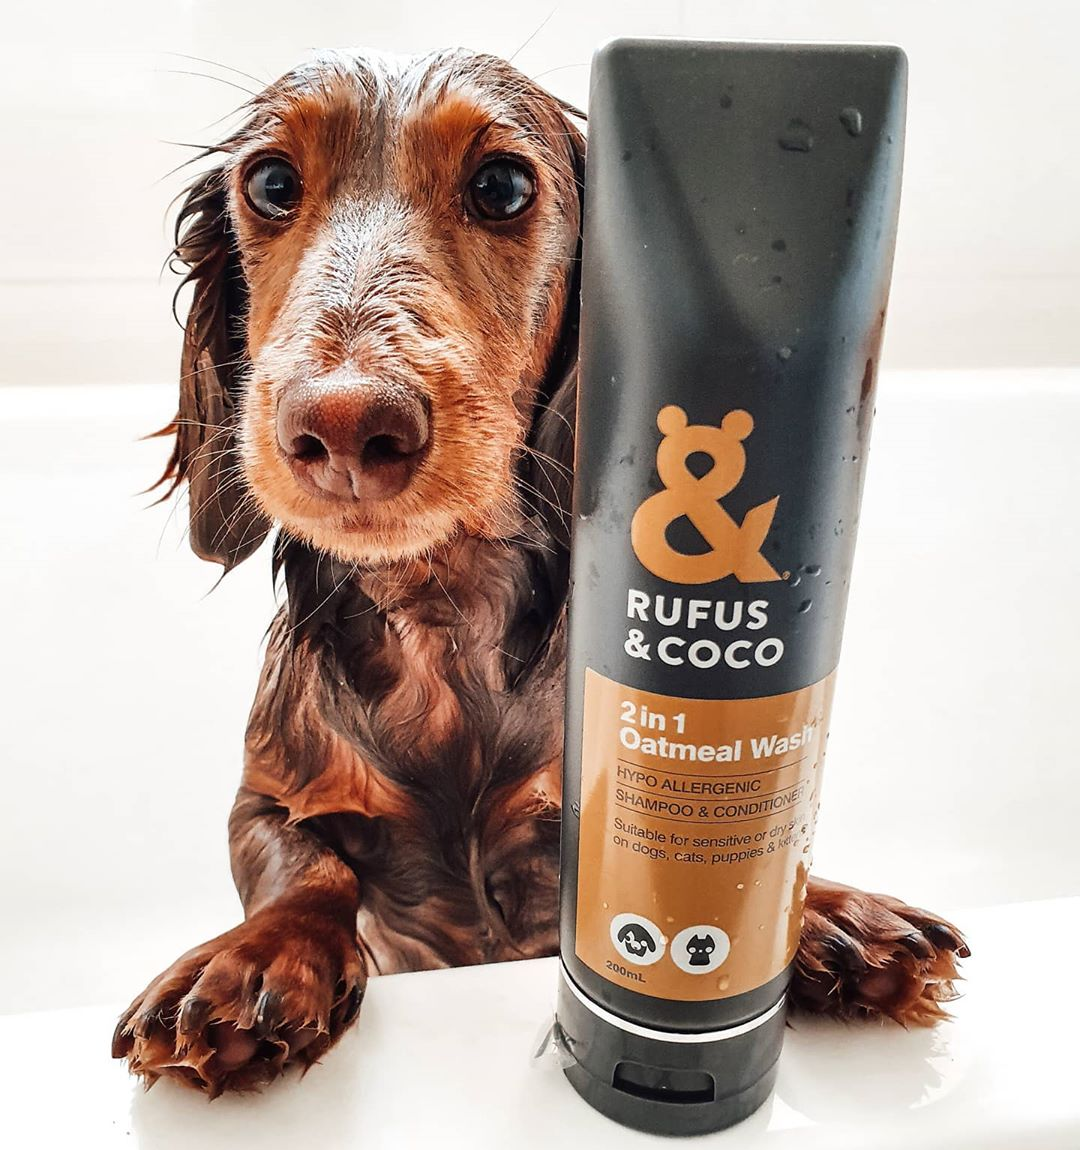 @theminihugo with 2in1 Oatmeal Wash by Rufus & Coco